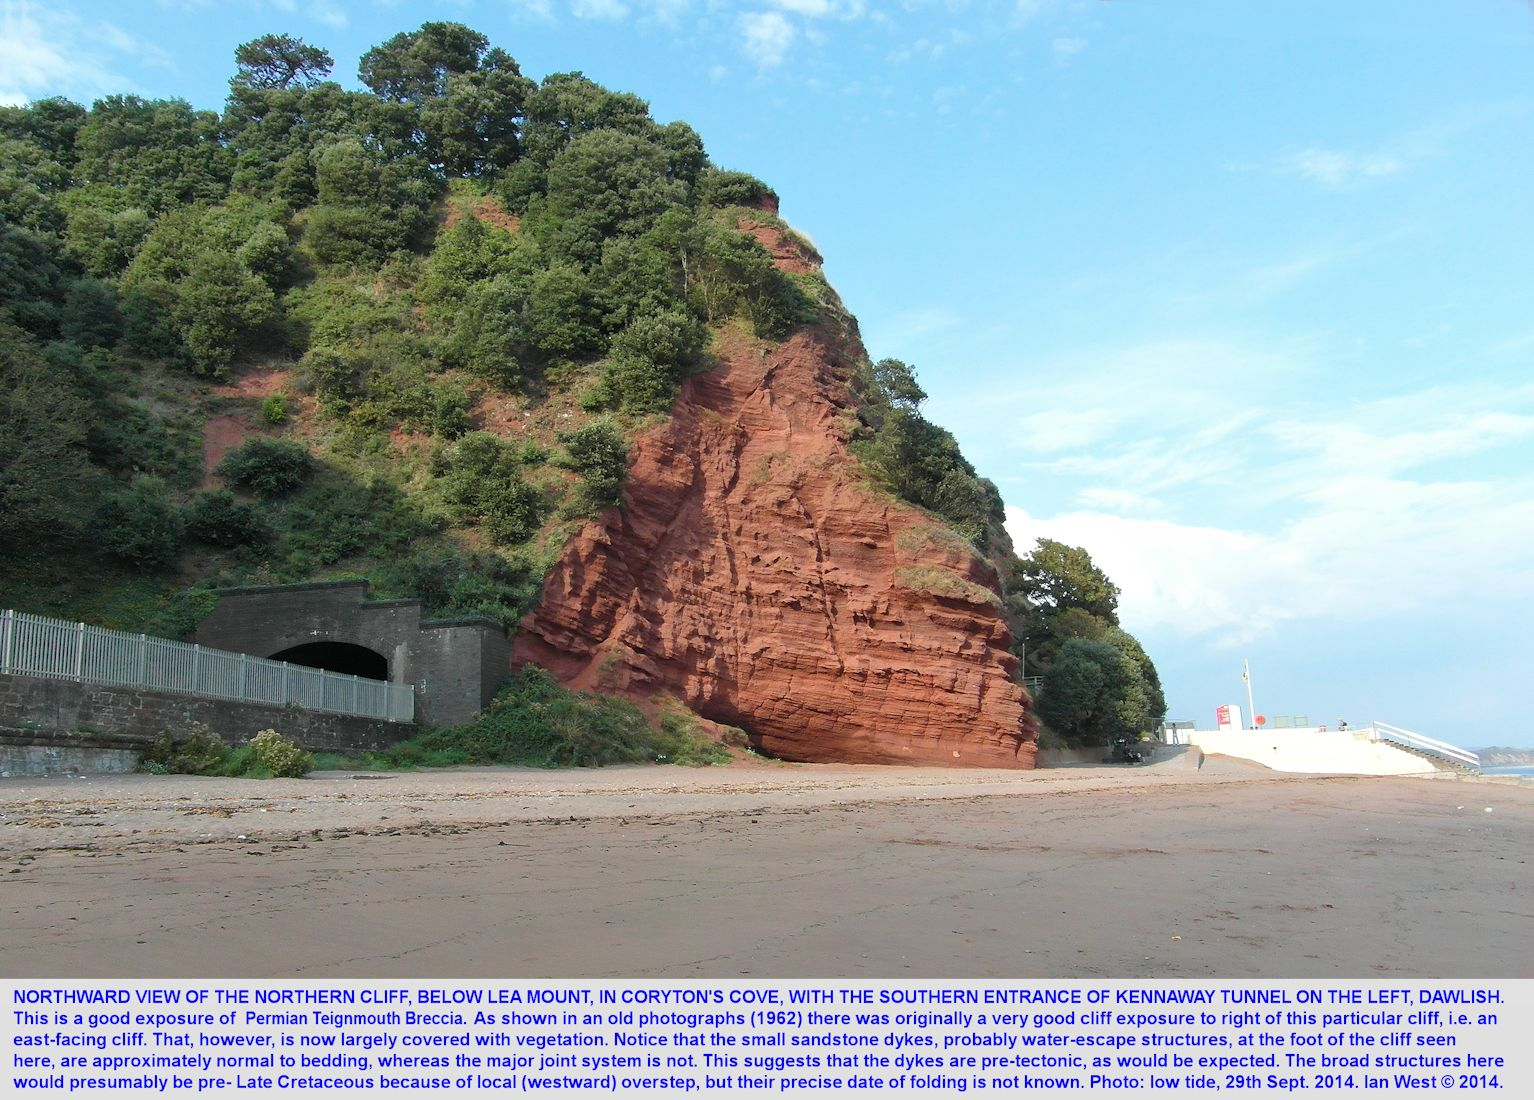 A general view northward in Coryton's Cove, Dawlish showing dipping Permian, Teignmouth Breccia, Dawlish,  Devon, 29th September 2014